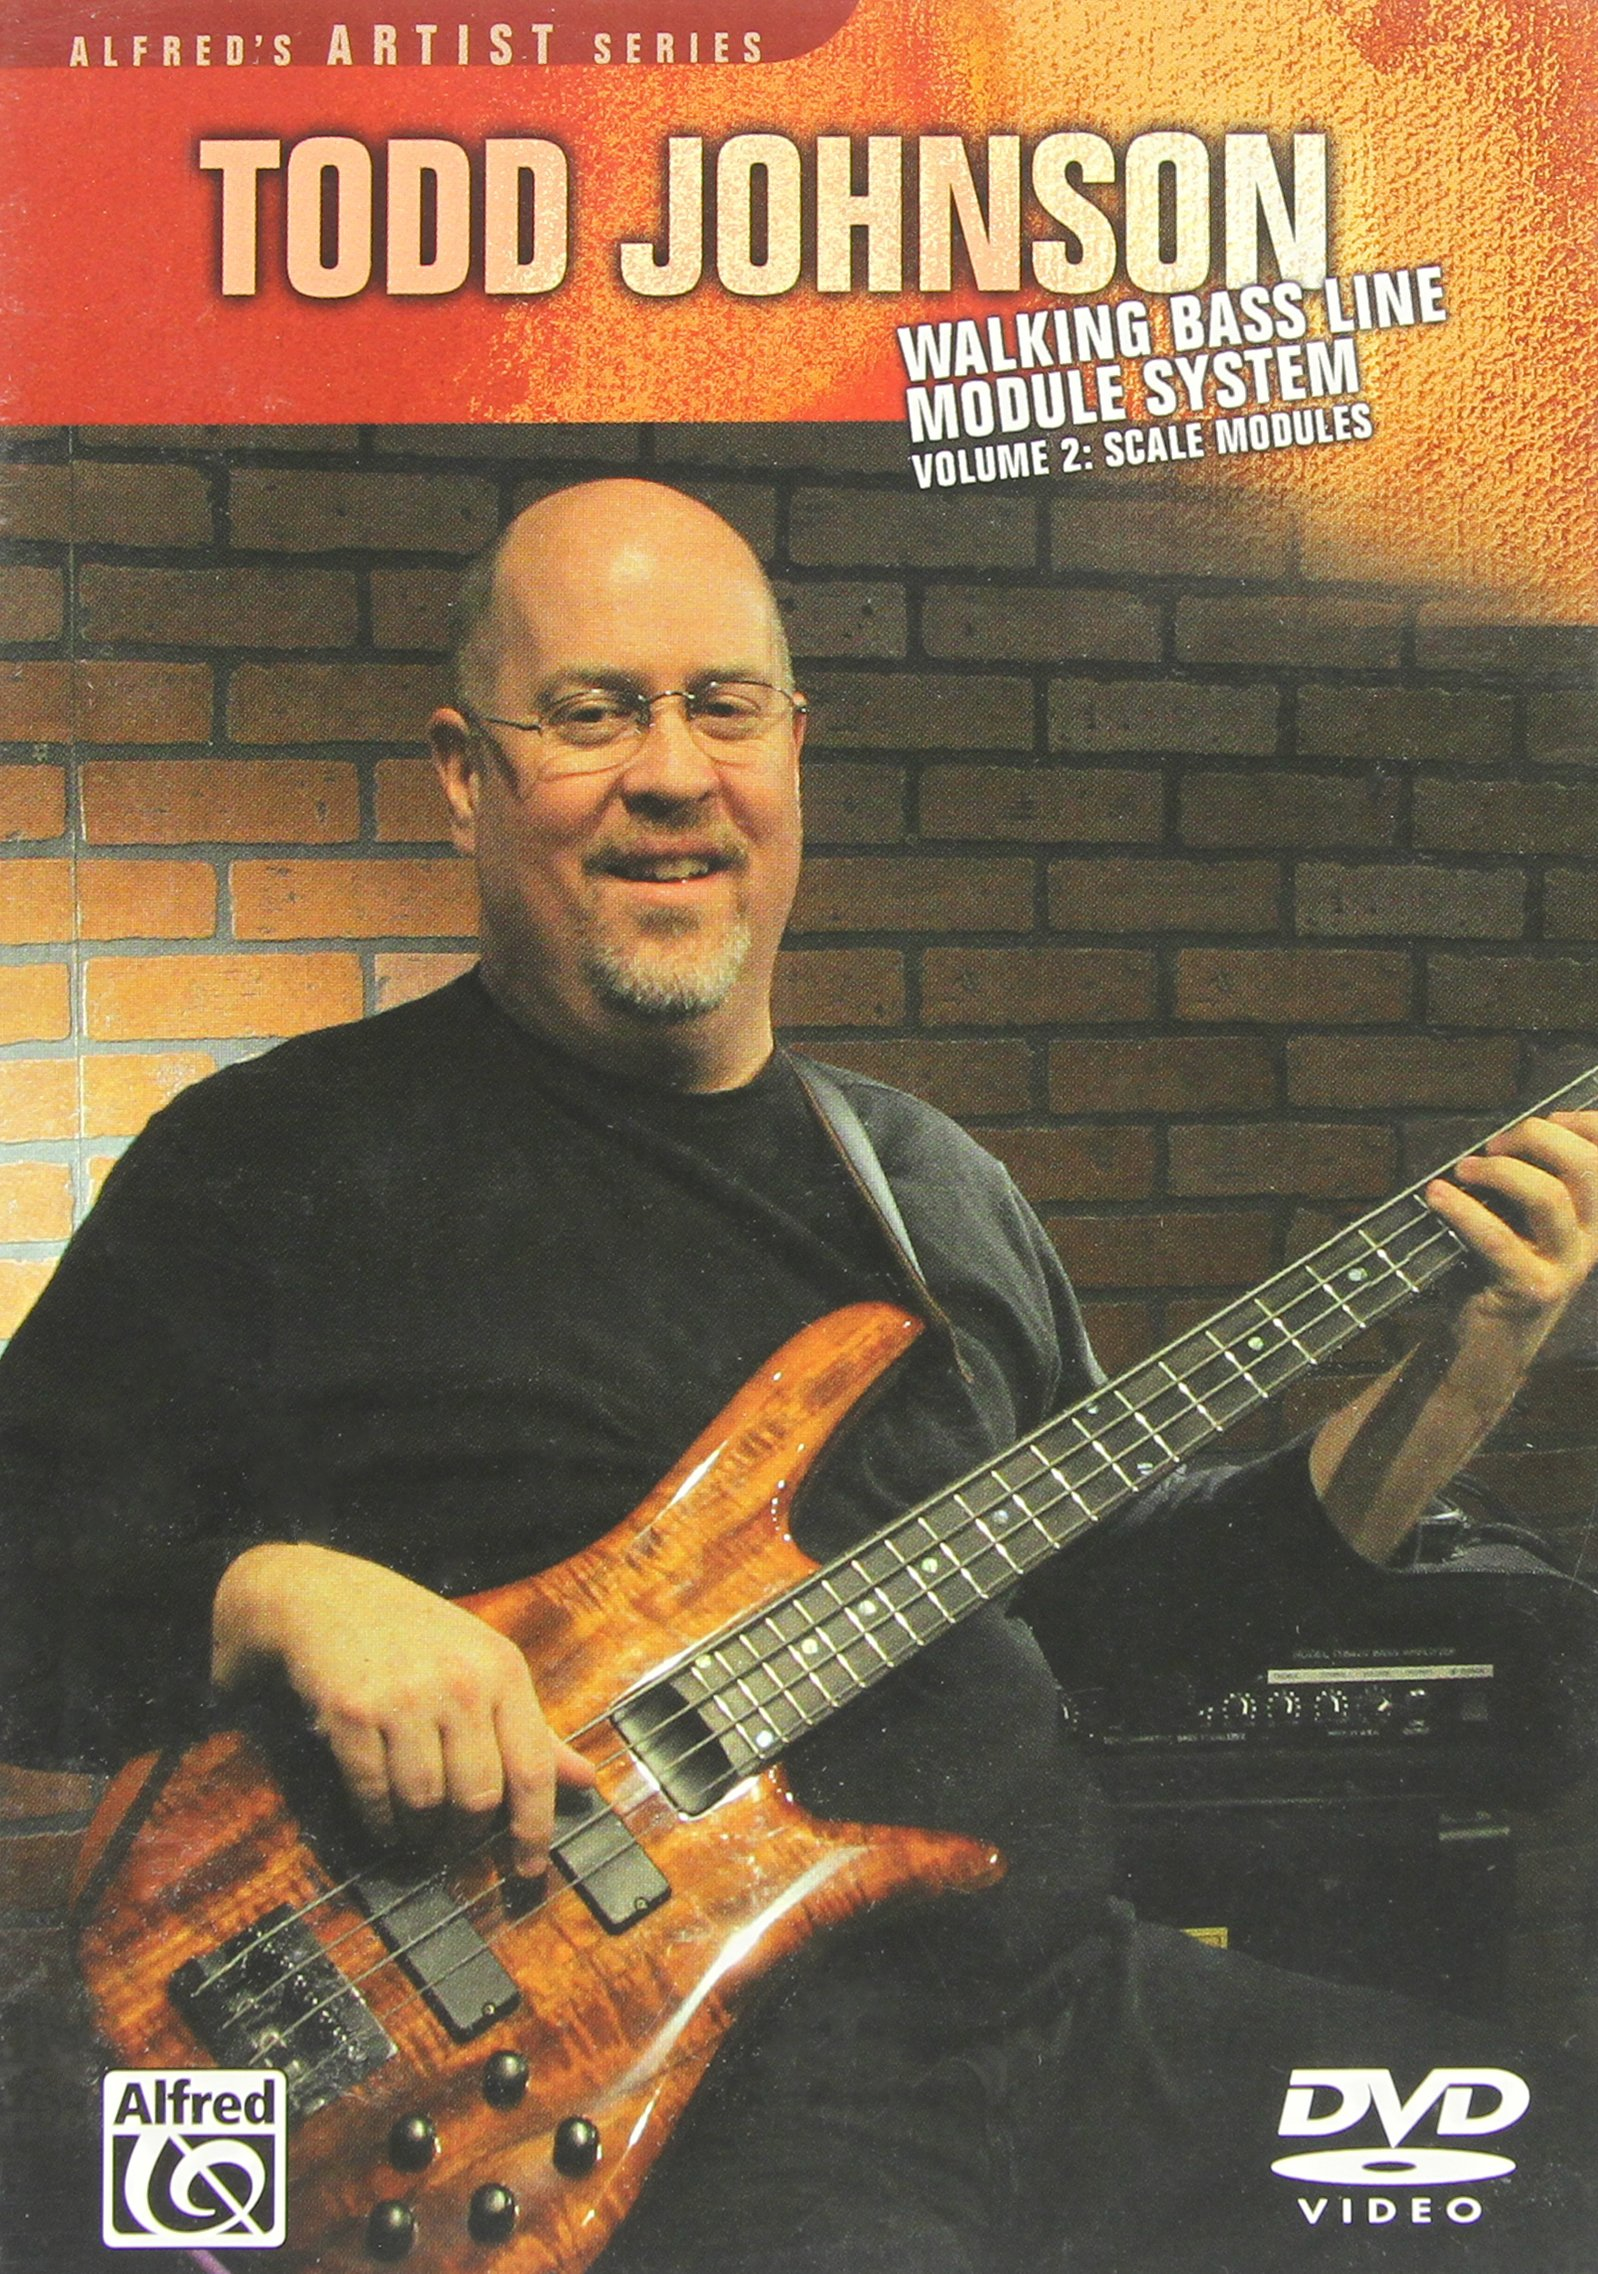 DVD : Todd Johnson - Walking Bass Line Module System: Volume 2: Scale Modules (DVD)